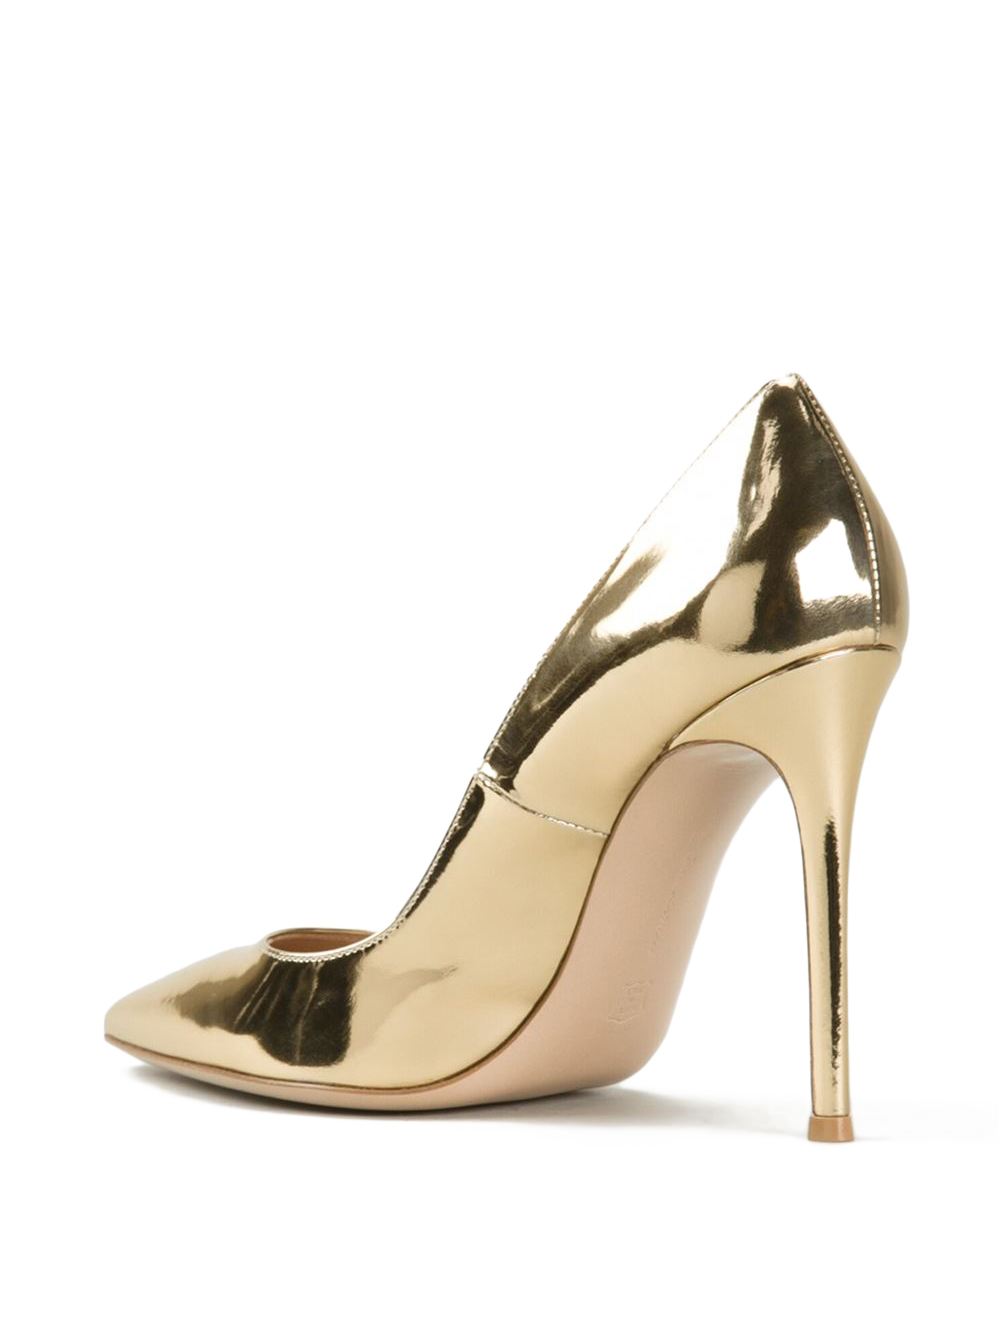 Gianvito rossi Metallic Gold Pumps in Metallic | Lyst